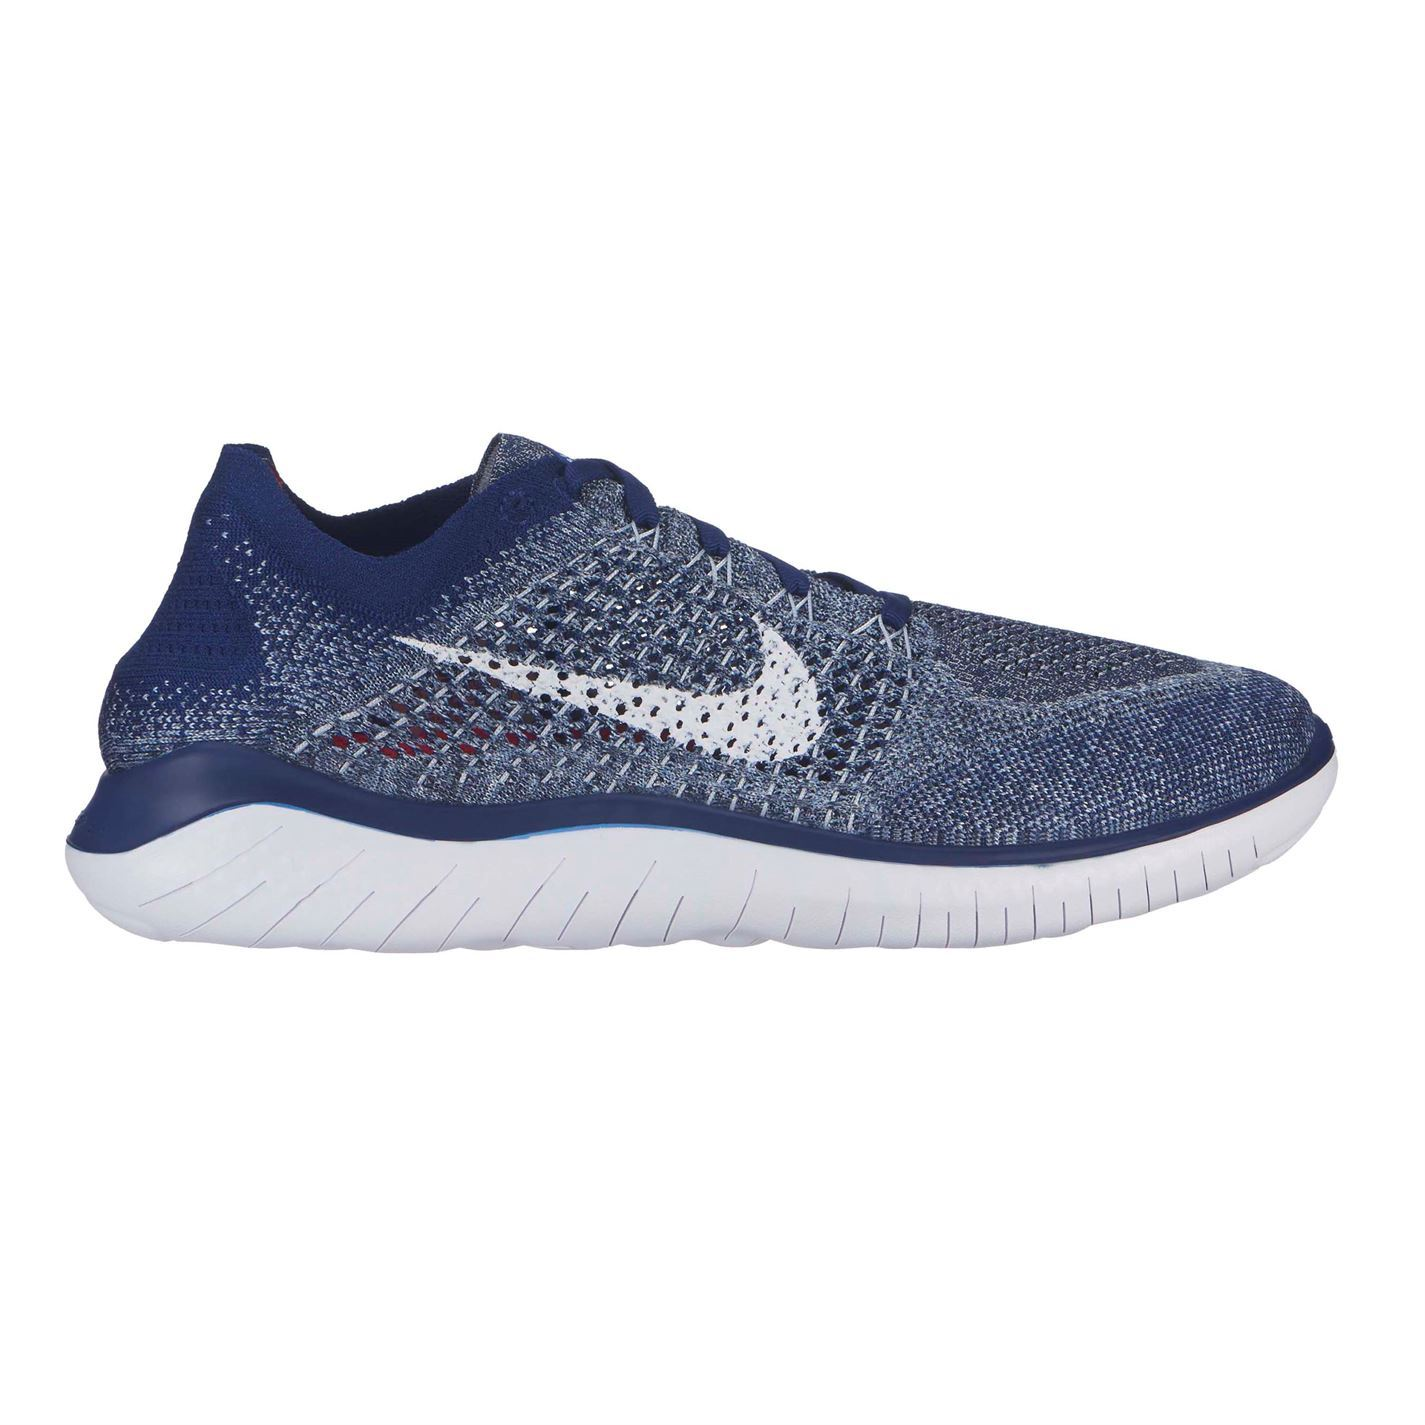 Details about Nike Free RN Flyknit 2018 Running Shoes Mens Fitness Jogging Trainers Sneakers